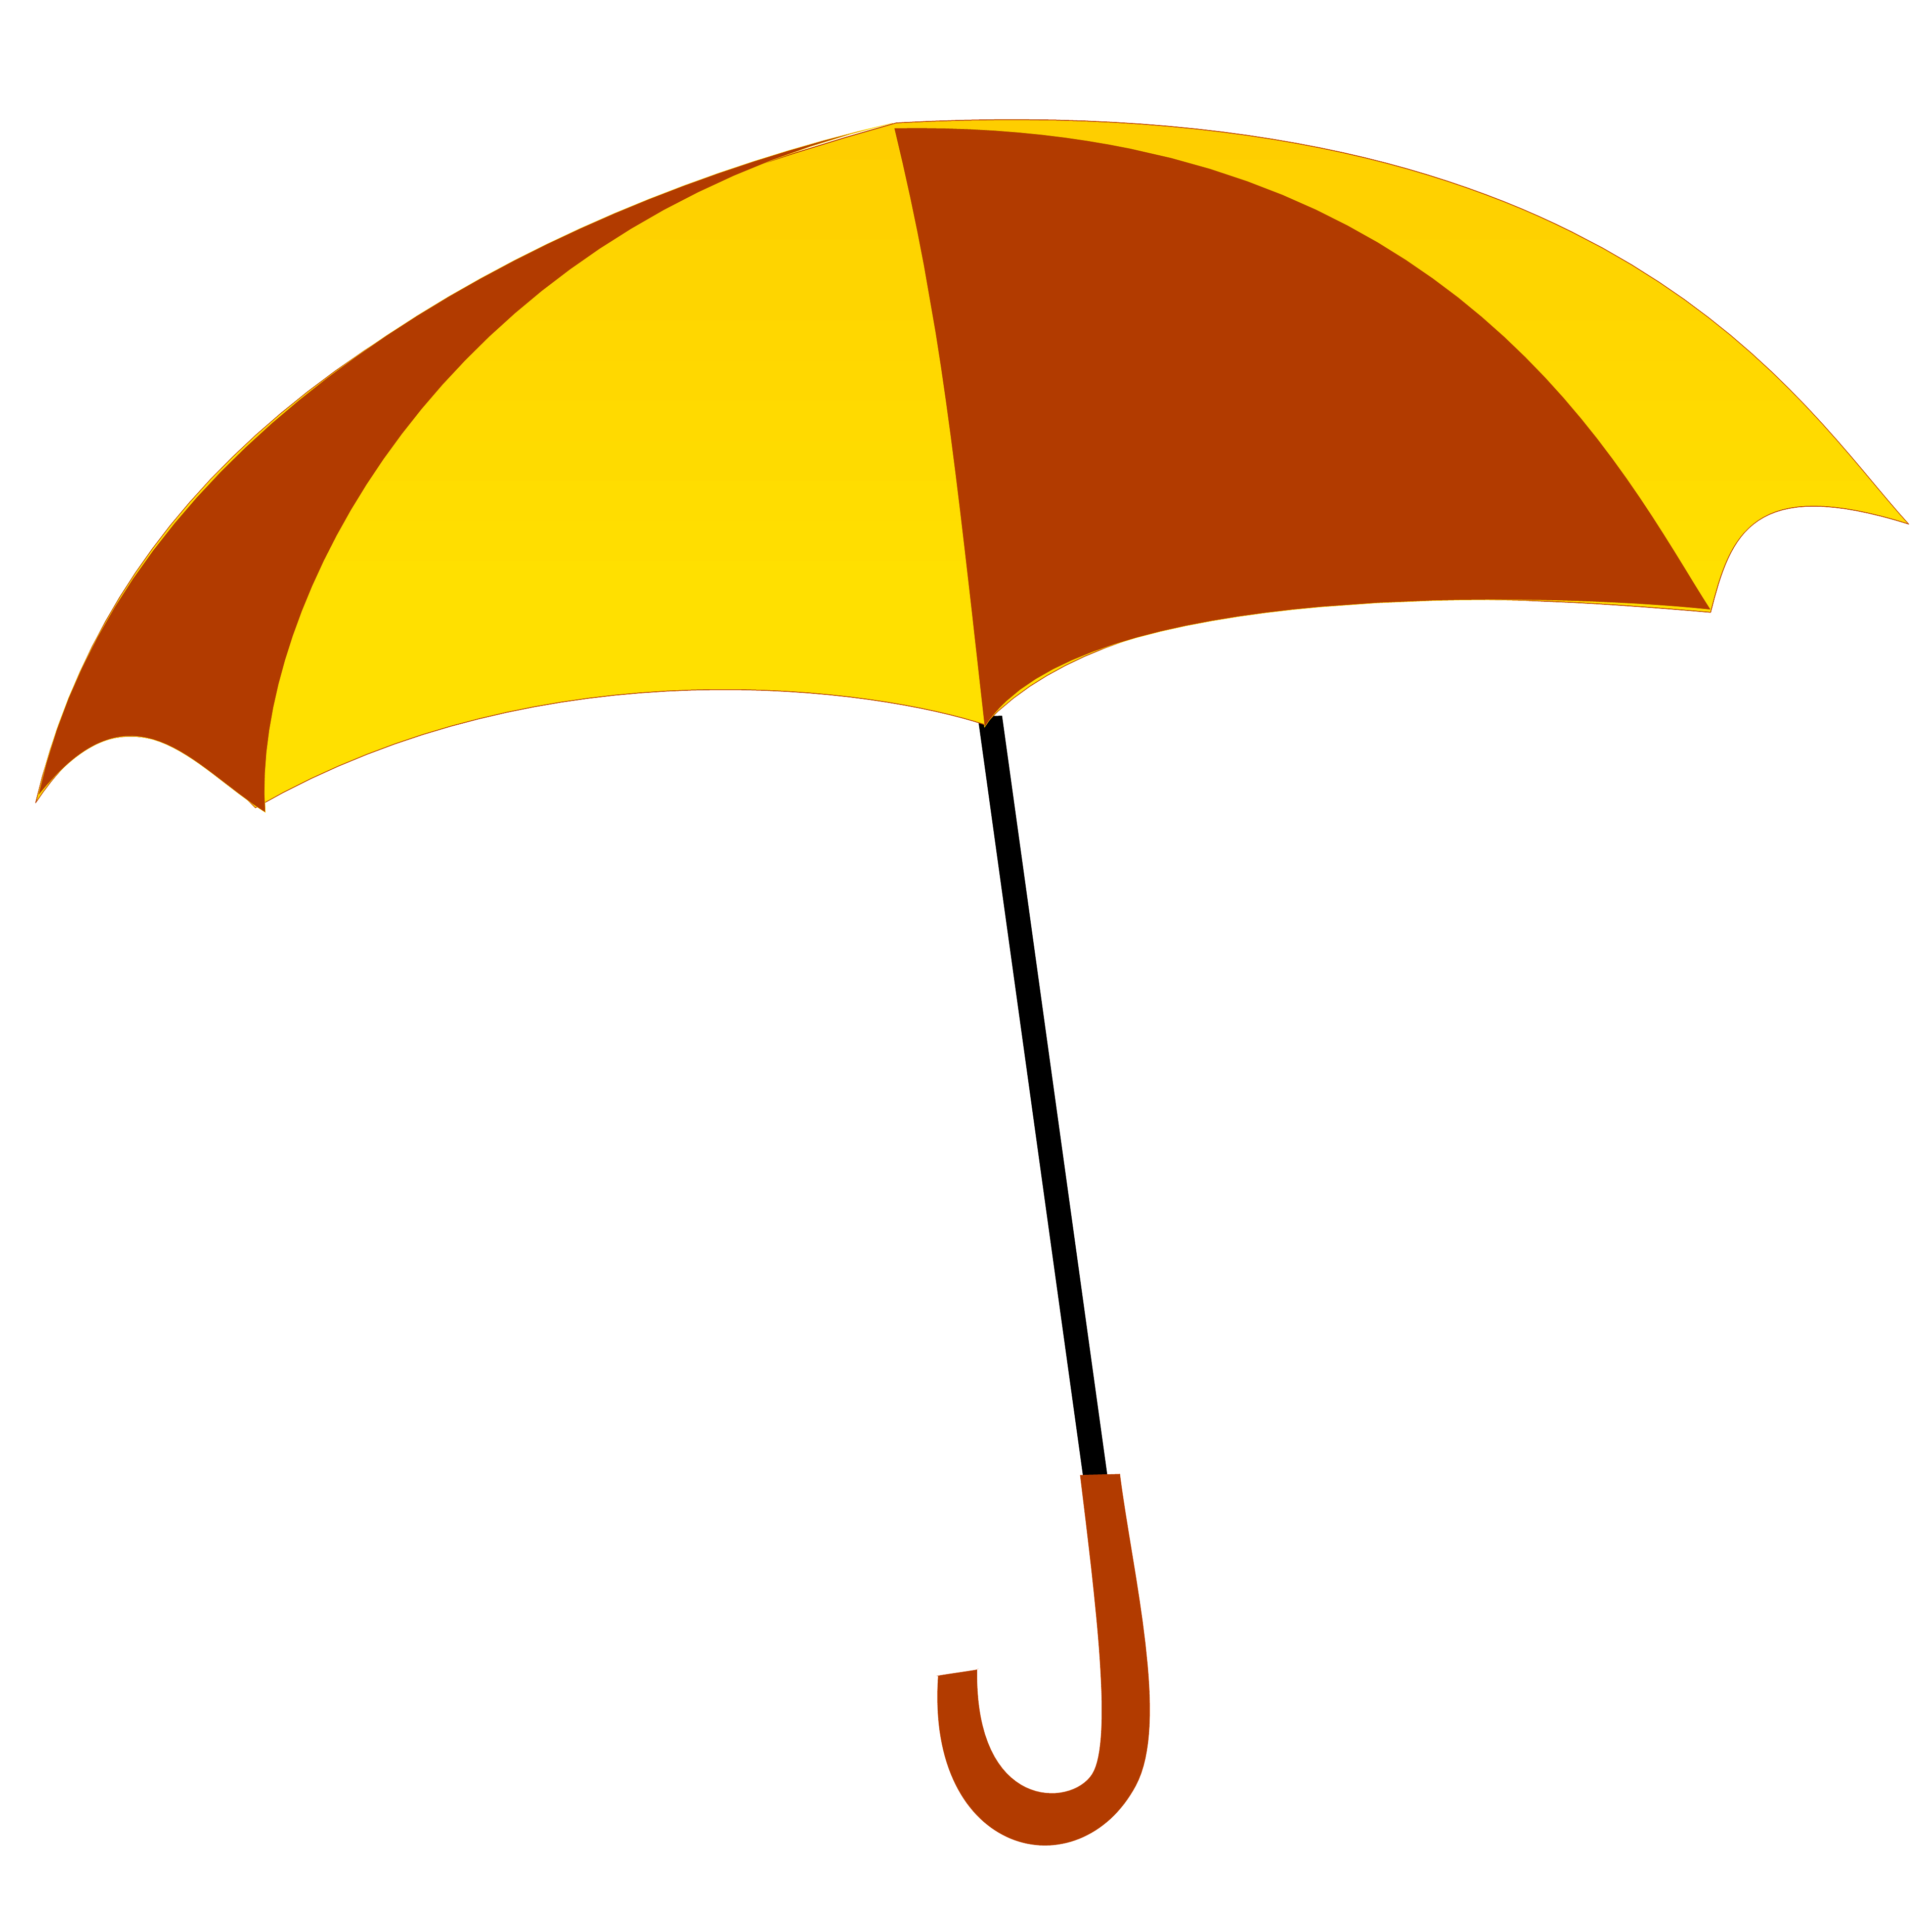 Umbrella clipart clip art. Purepng com of typegoodies